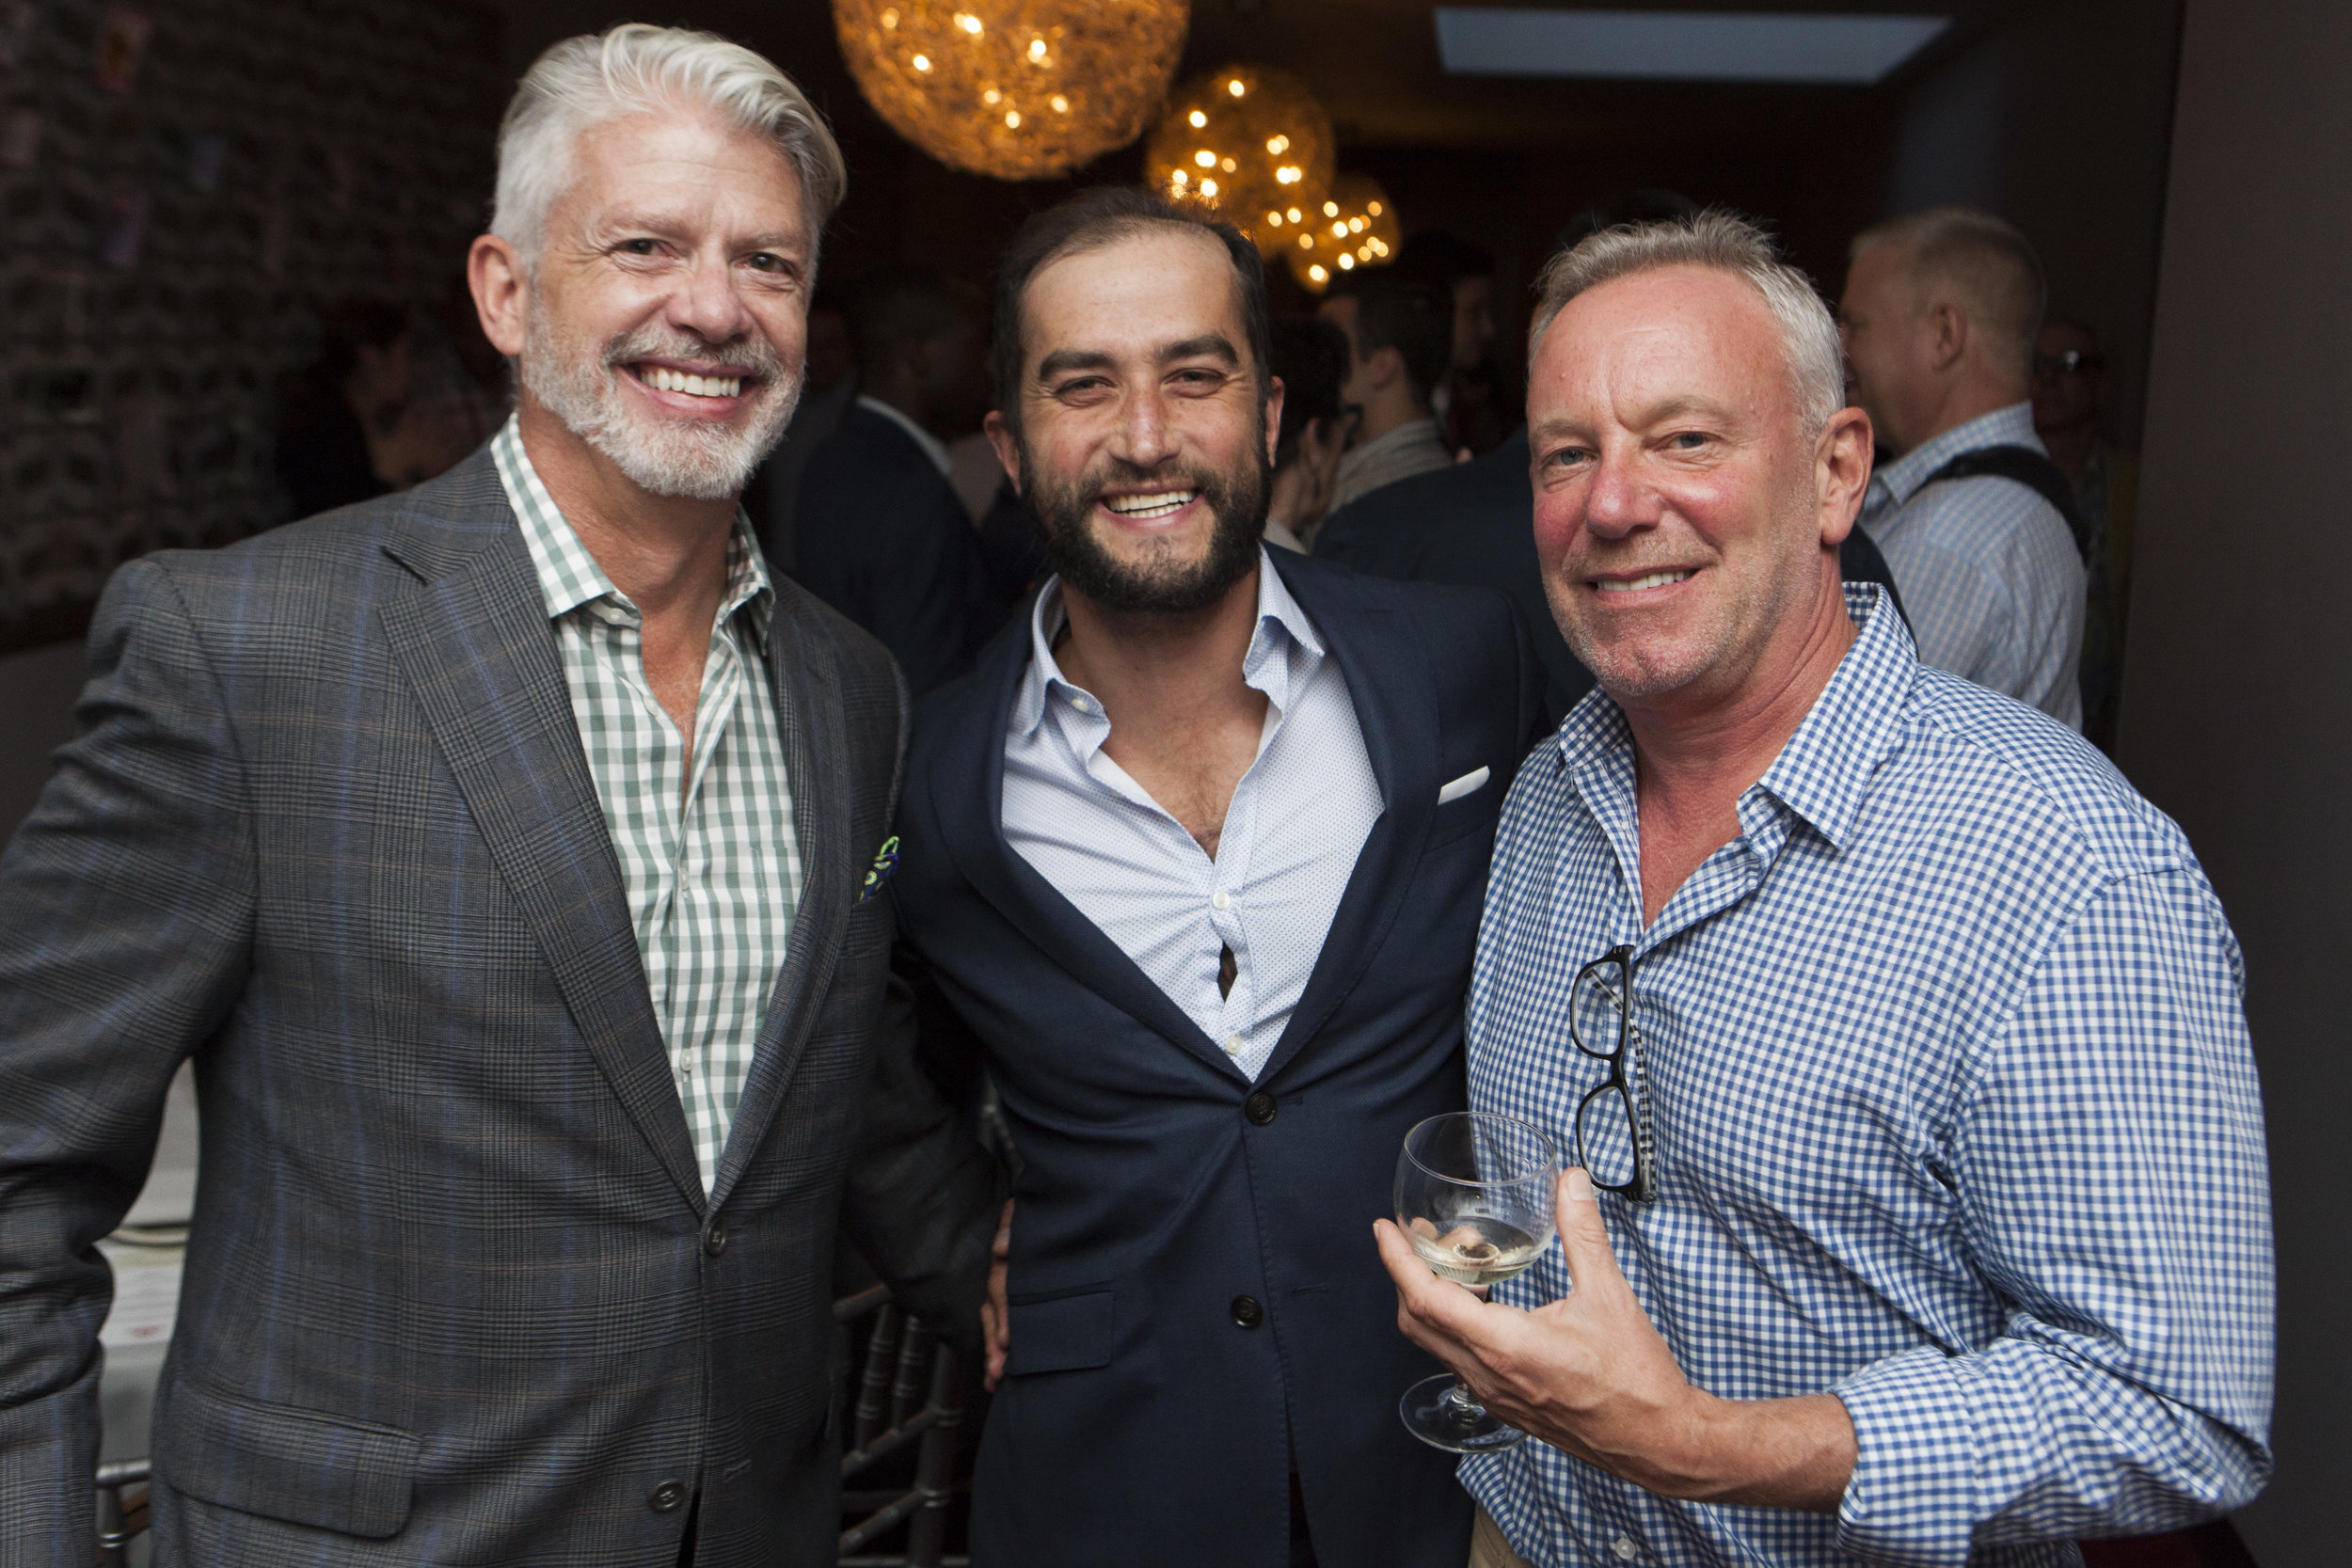 2016_09_26_The_Generations_Project_Fundraiser_Event_2016_09_26_The_Generations_Project_Fundraiser_Event_Ecetera_Etcentera2016_09_26_The_Generations_Project_Fundraiser_Event_Ecetera_Etcentera021.JPG